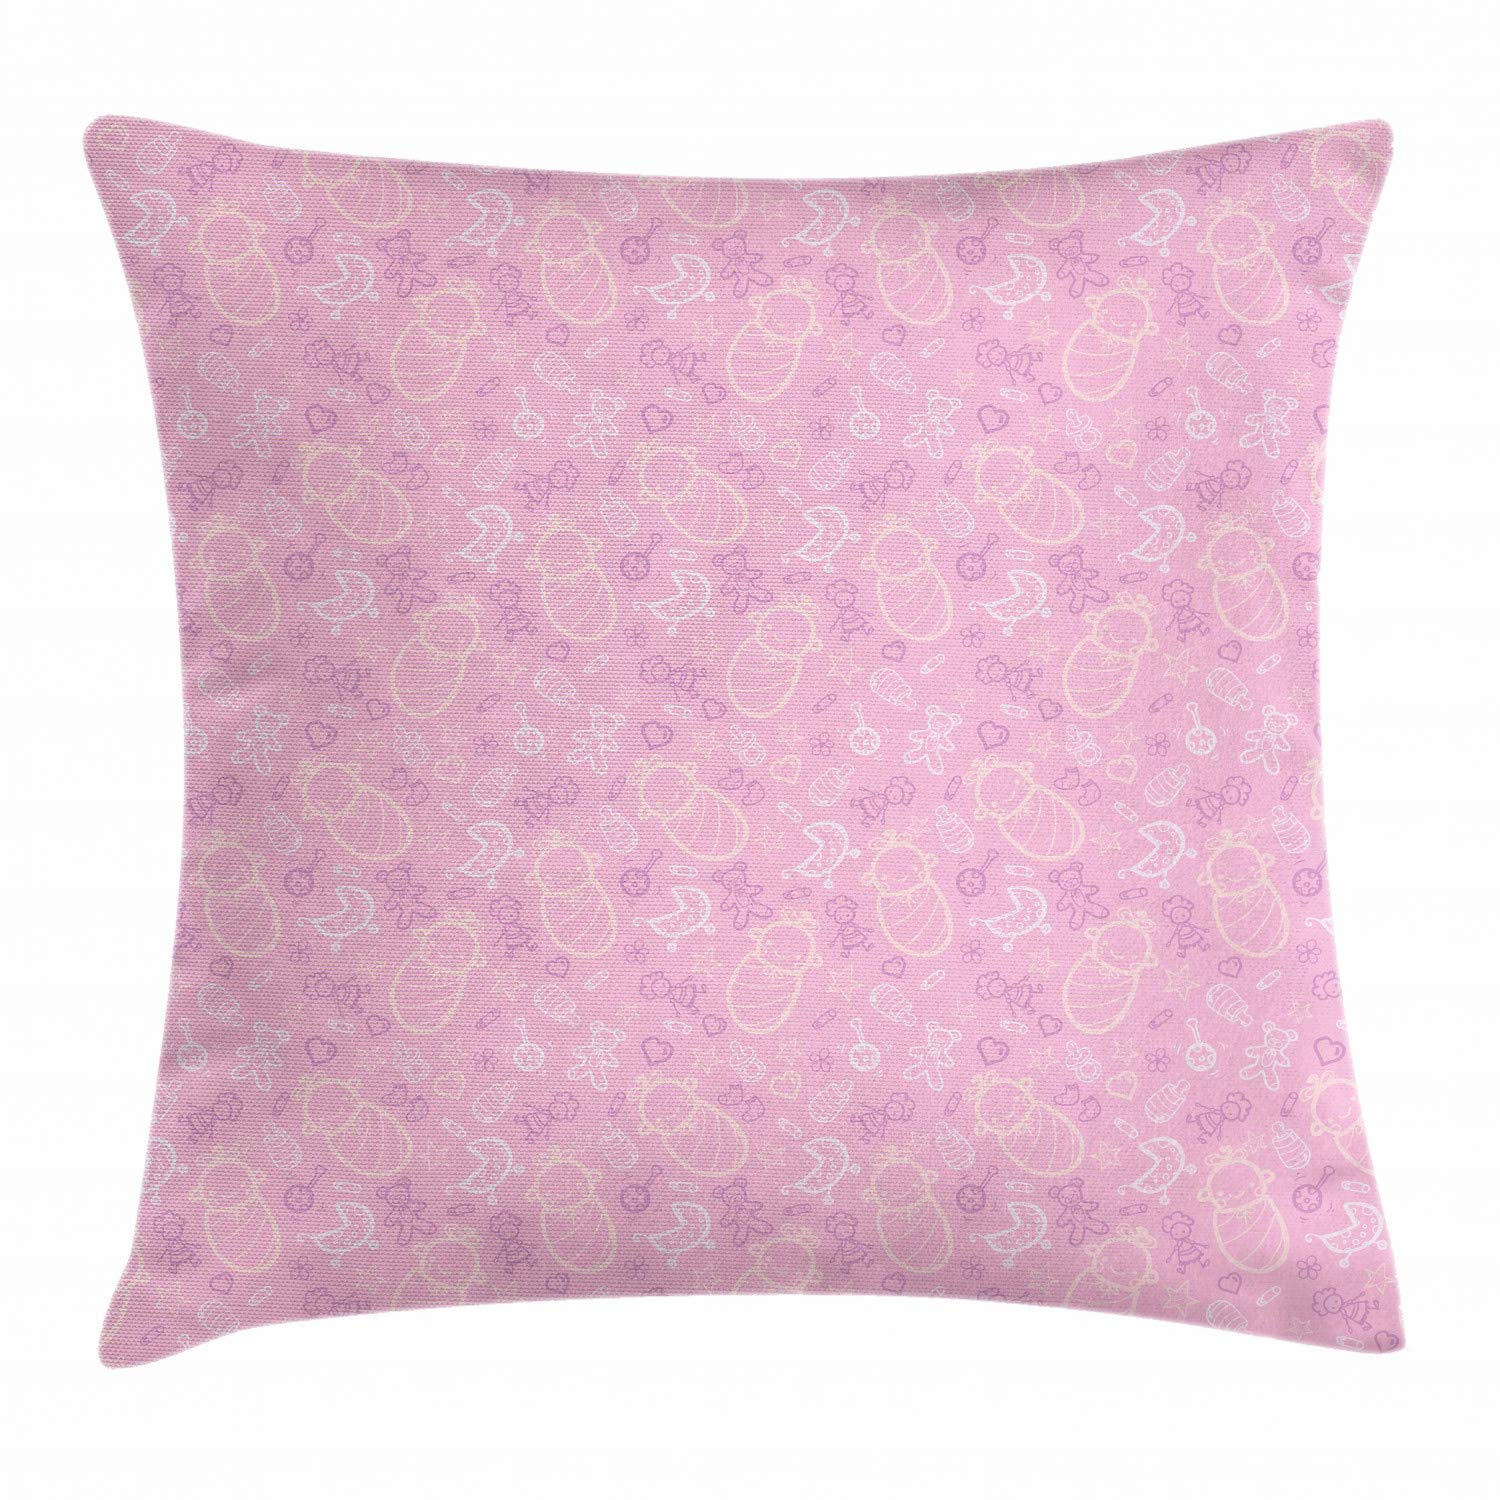 Lunarable Baby Pink Throw Pillow Cushion Cover, Nursery Arrangement with Hearts and Toys Sketch, Decorative Square Accent Pillow Case, 40'' X 40'', Baby Pink Pastel Purple Champagne and White by Lunarable